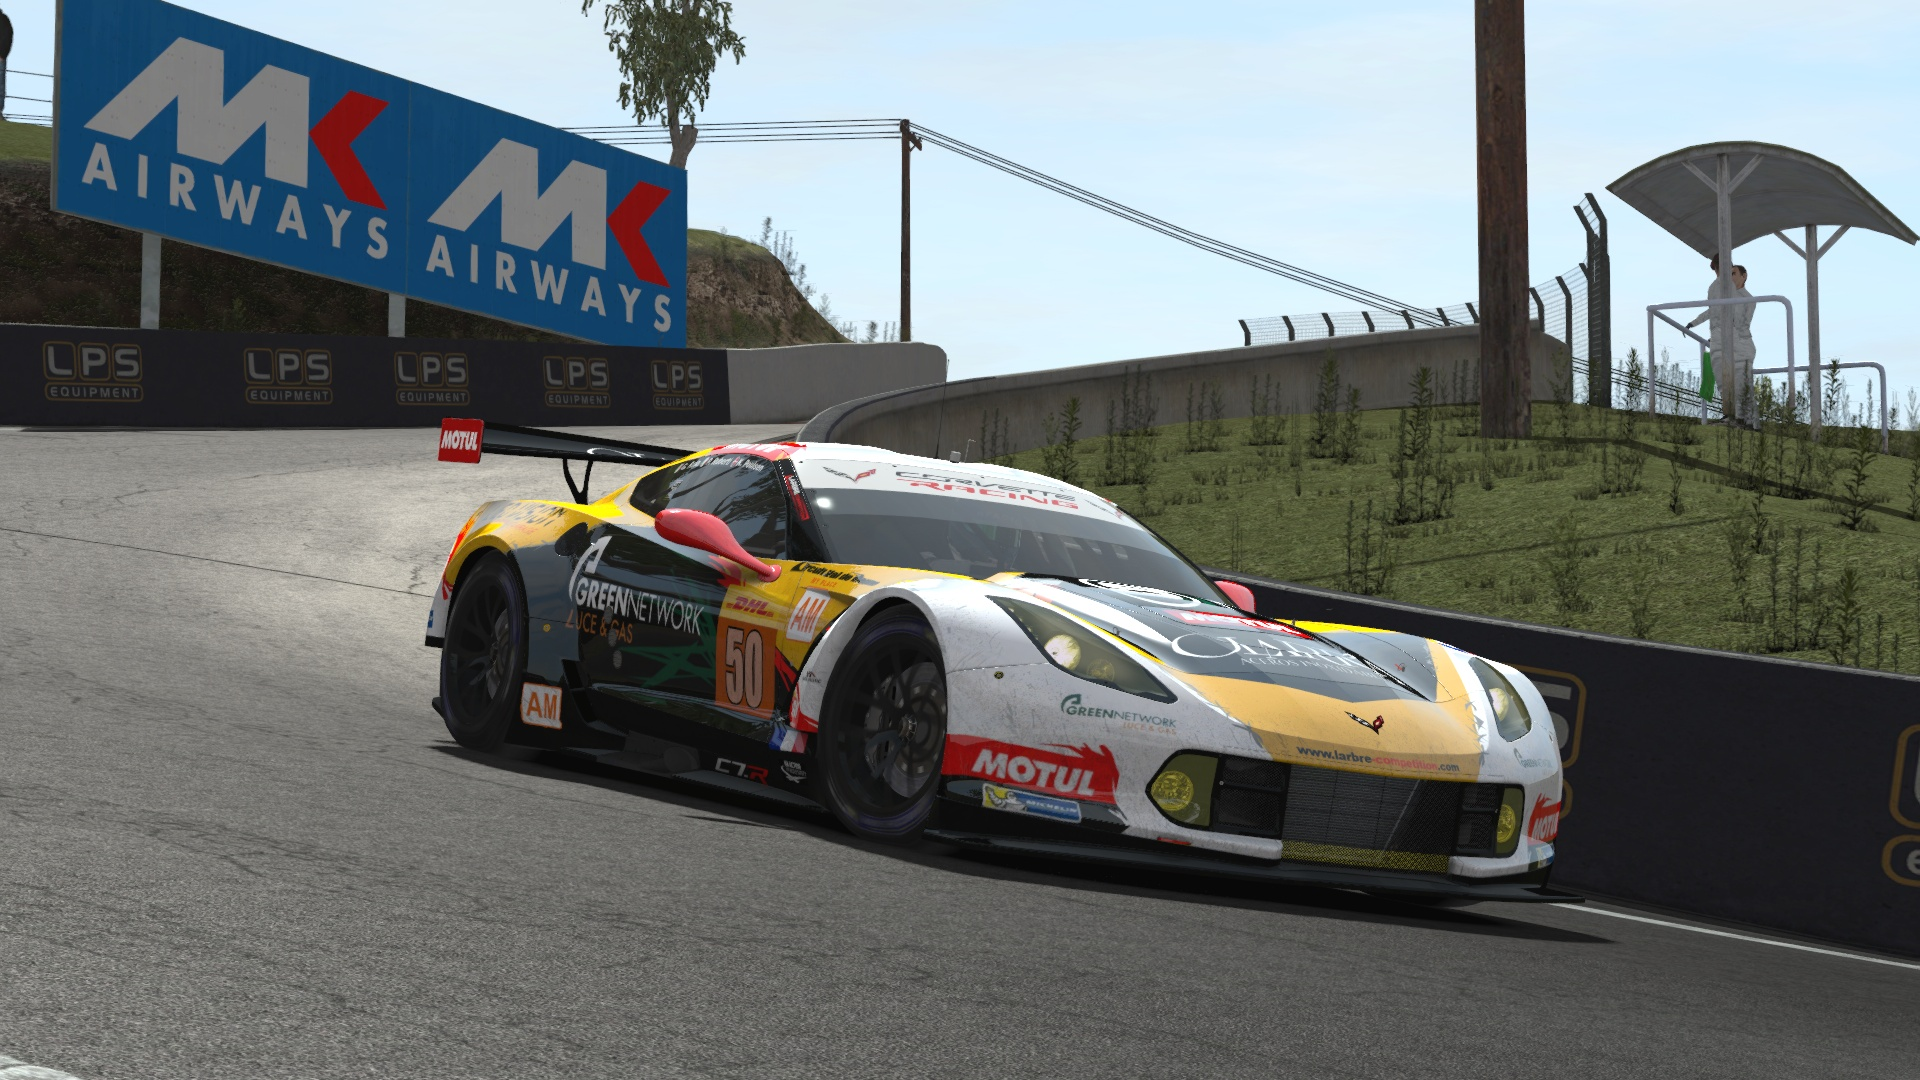 Rfactor 2 @ Mount Panorama